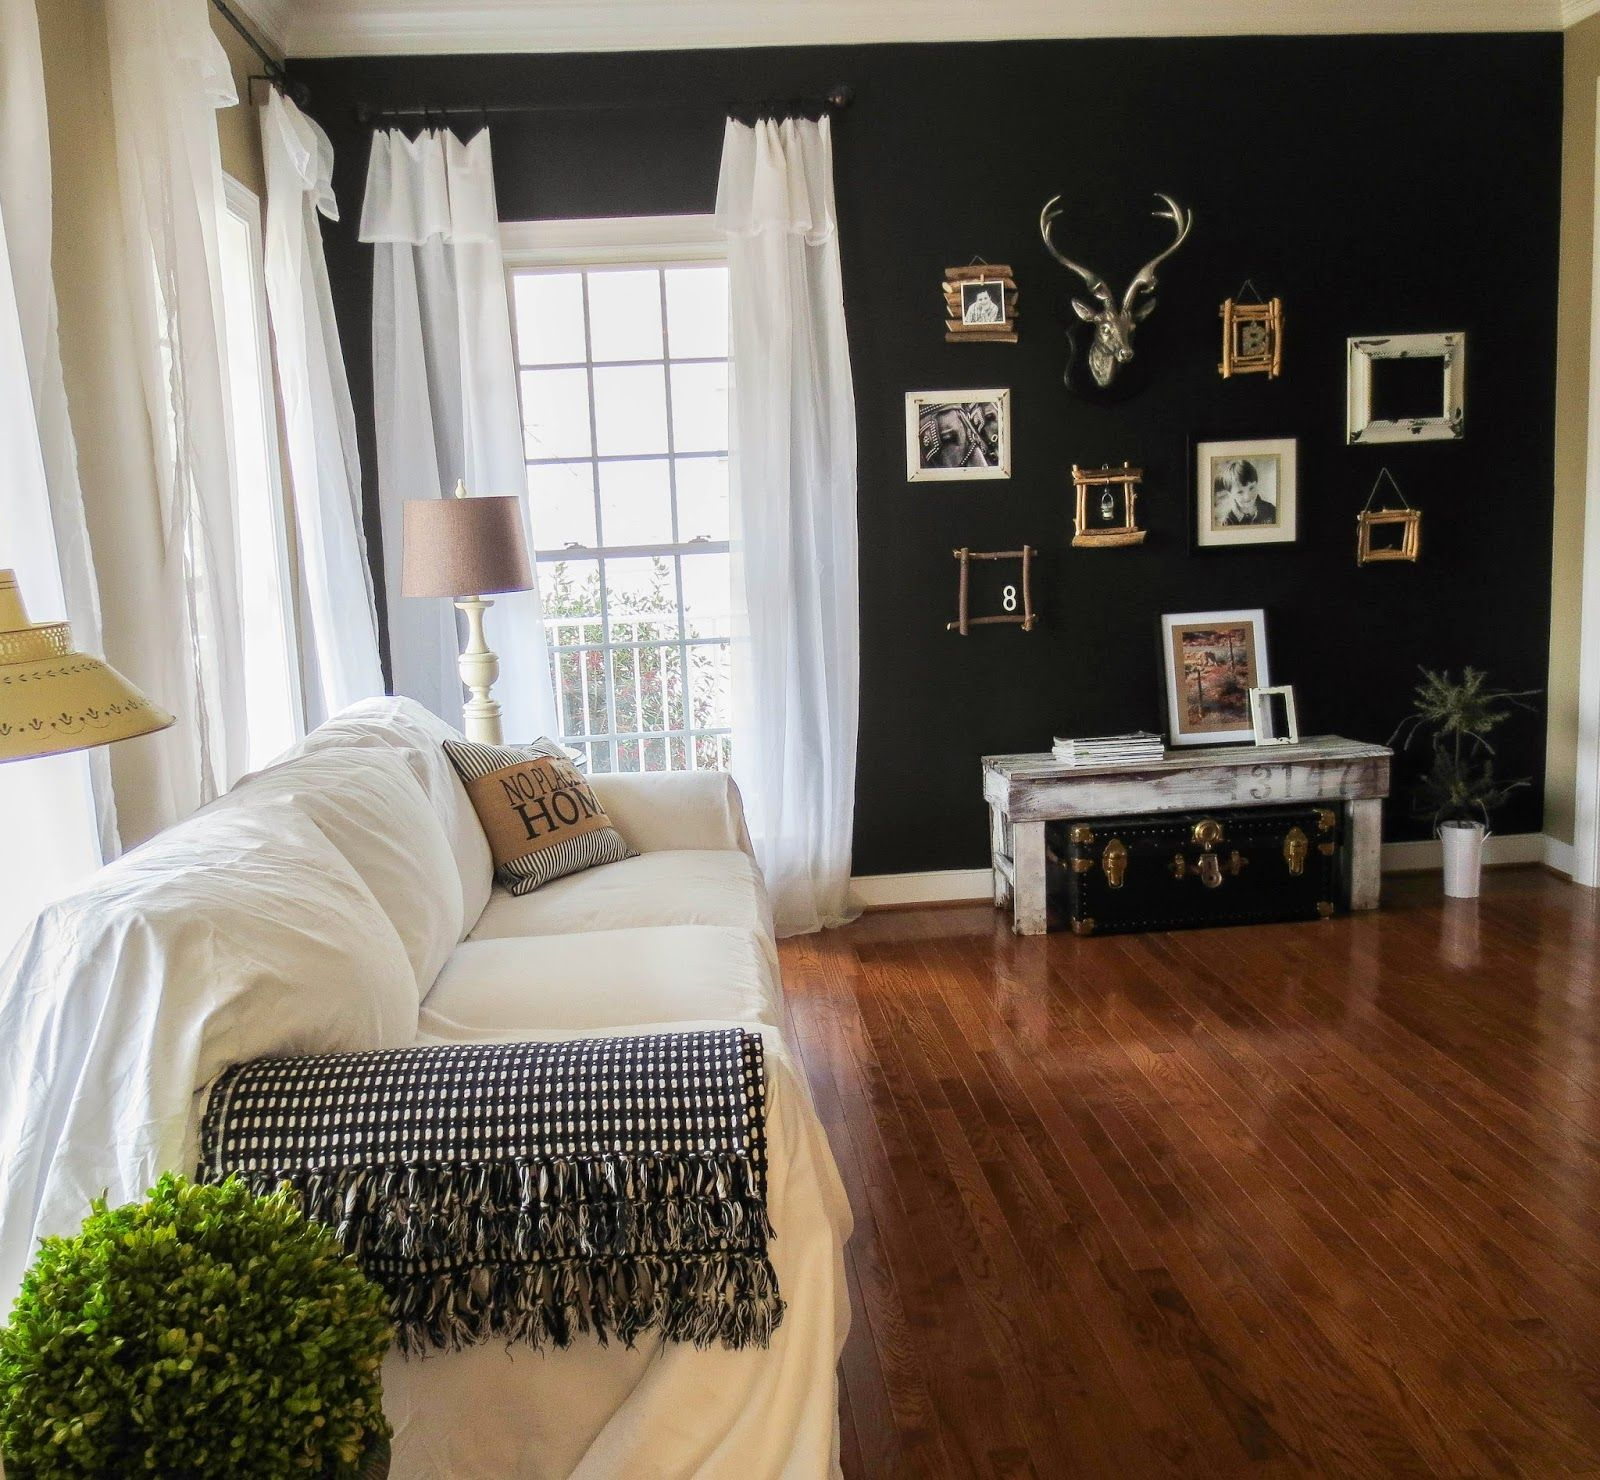 Paint A Black Accent Wall Black painted walls, Black